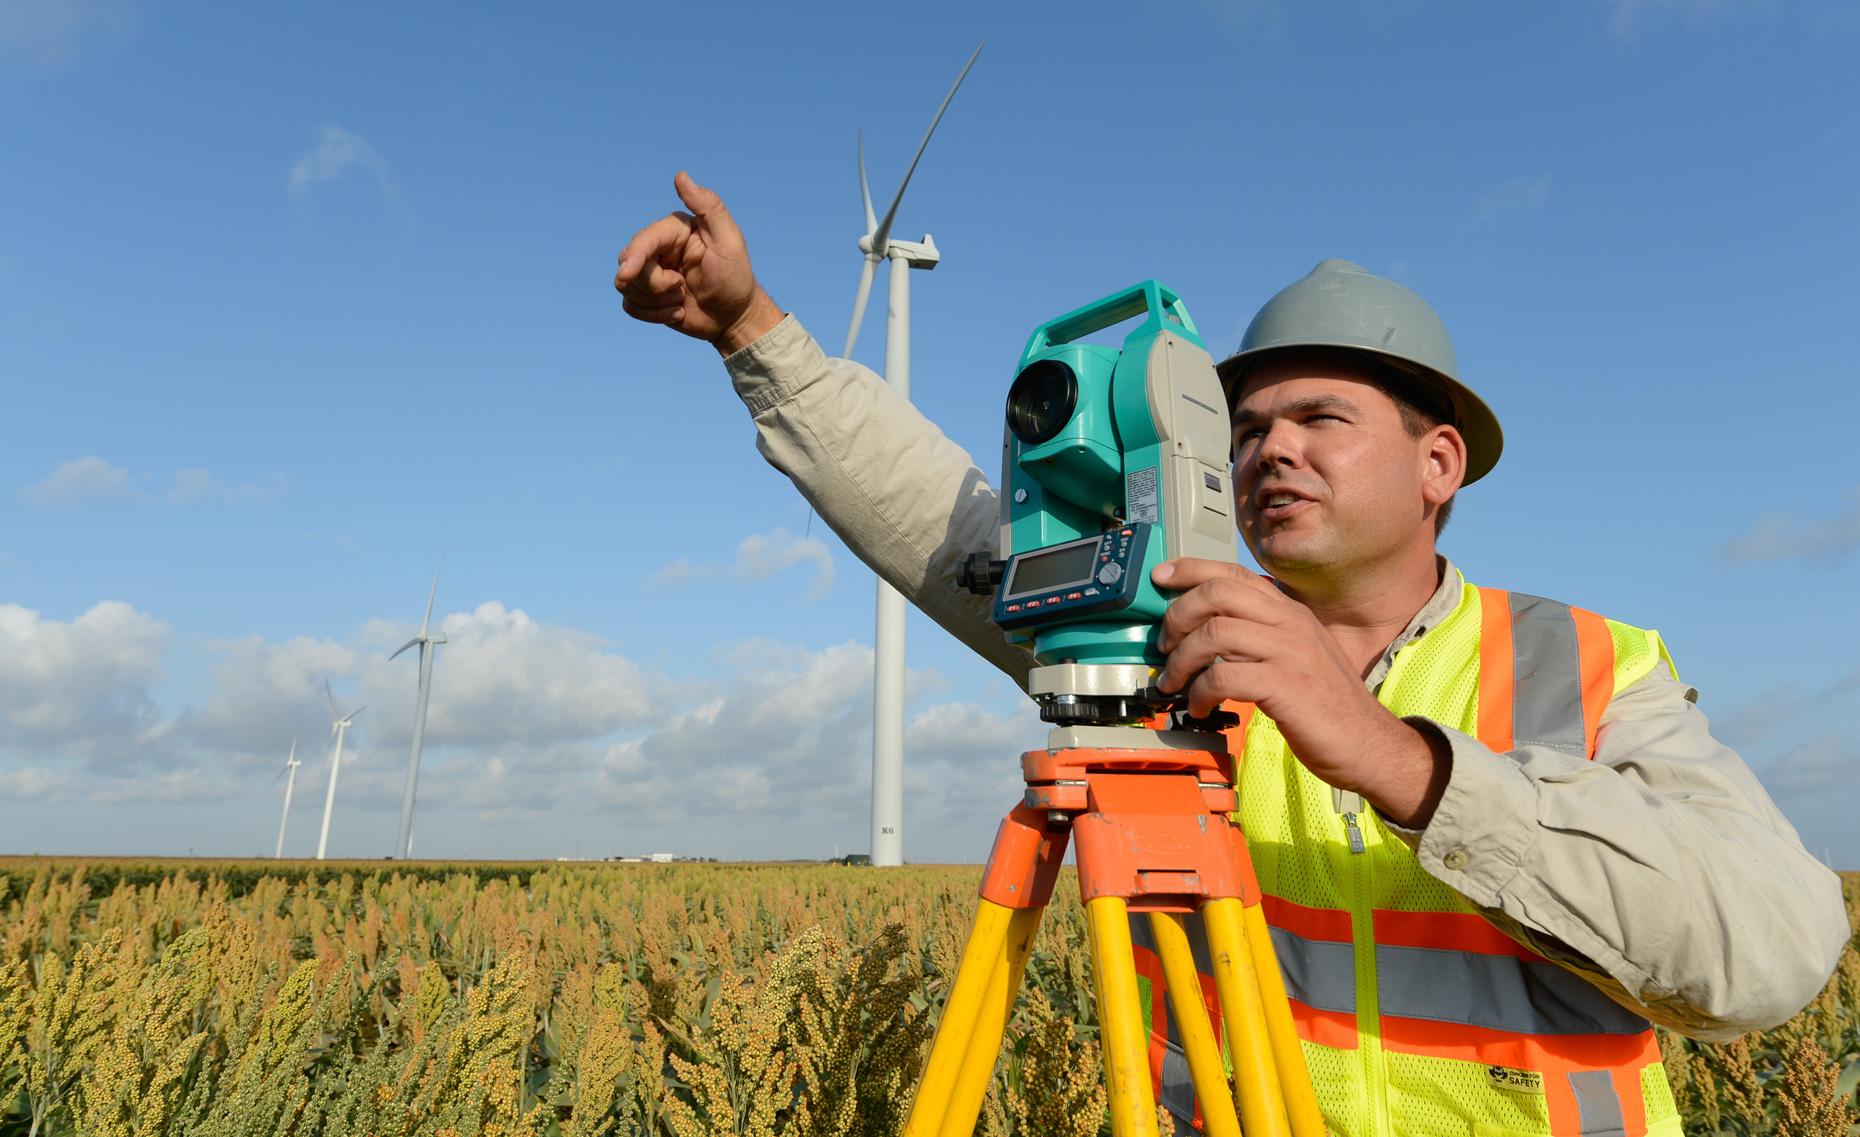 Surveyor in Corpus Christi, Texas by industrial photographer Kevin Brown.